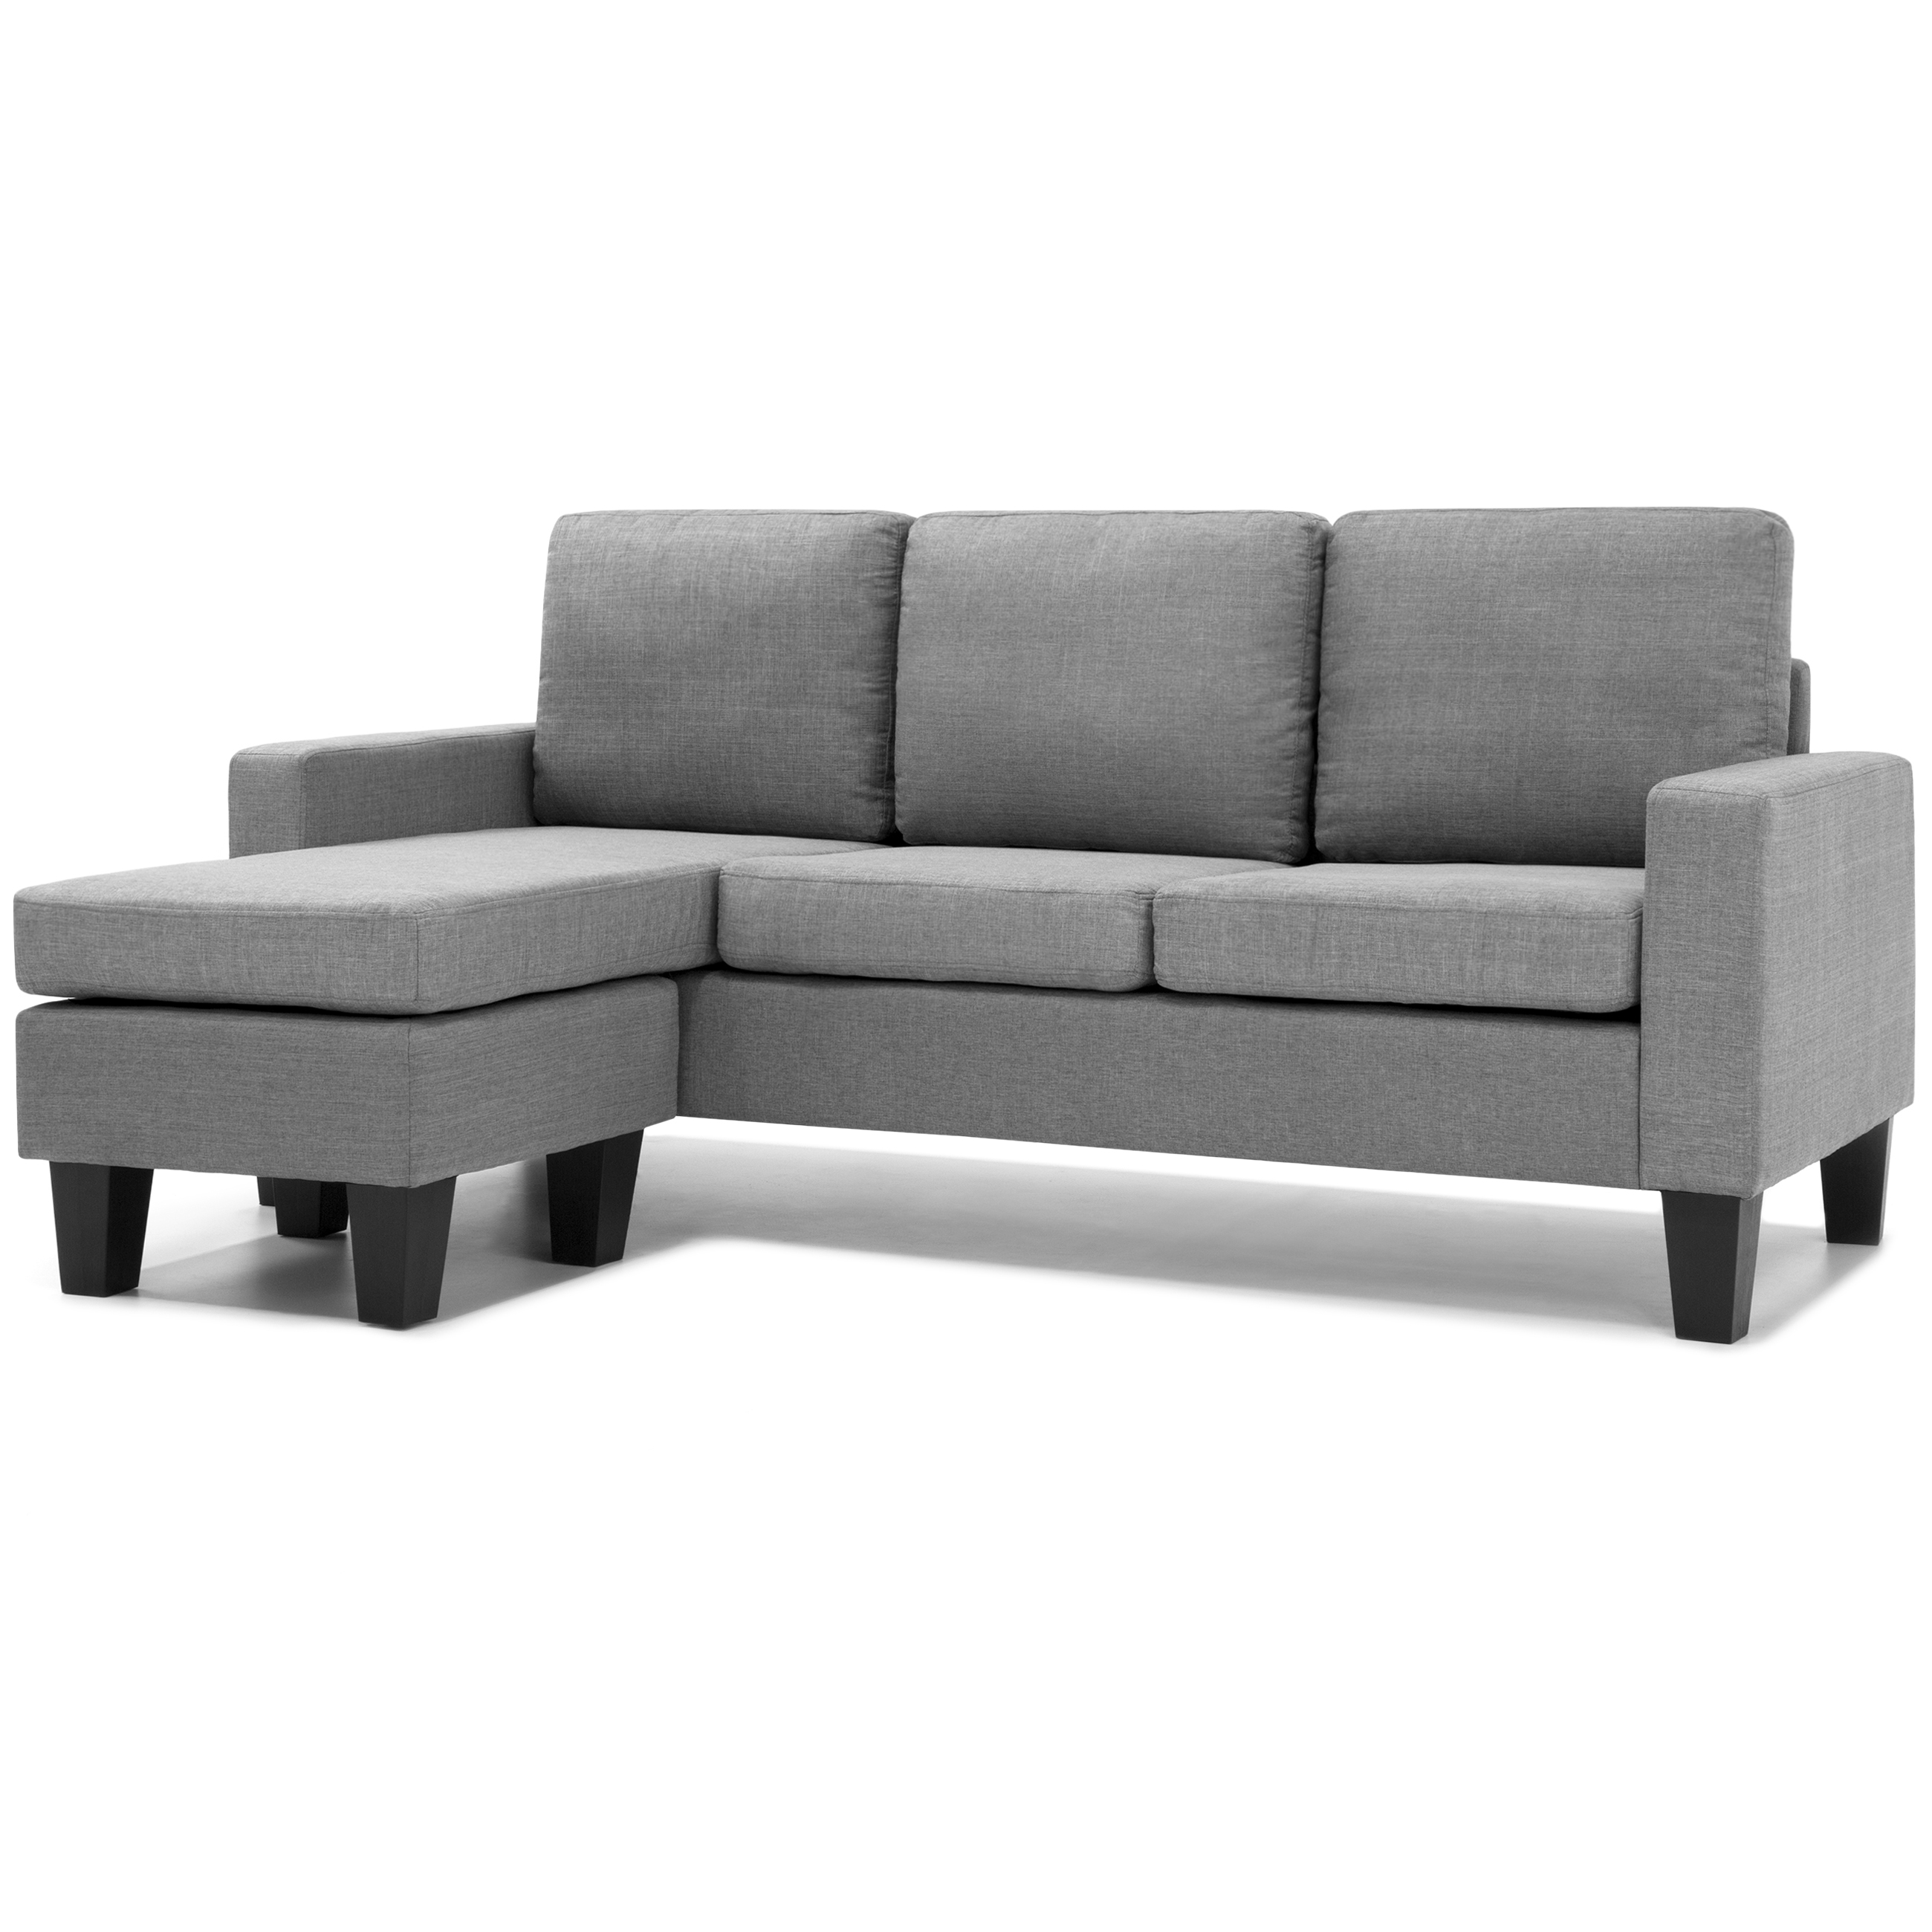 Best Choice Products Multifunctional Linen 3 Seat L Shape Sectional Sofa Couch W Reversible Chaise Ottoman Gray Walmart Com Walmart Com